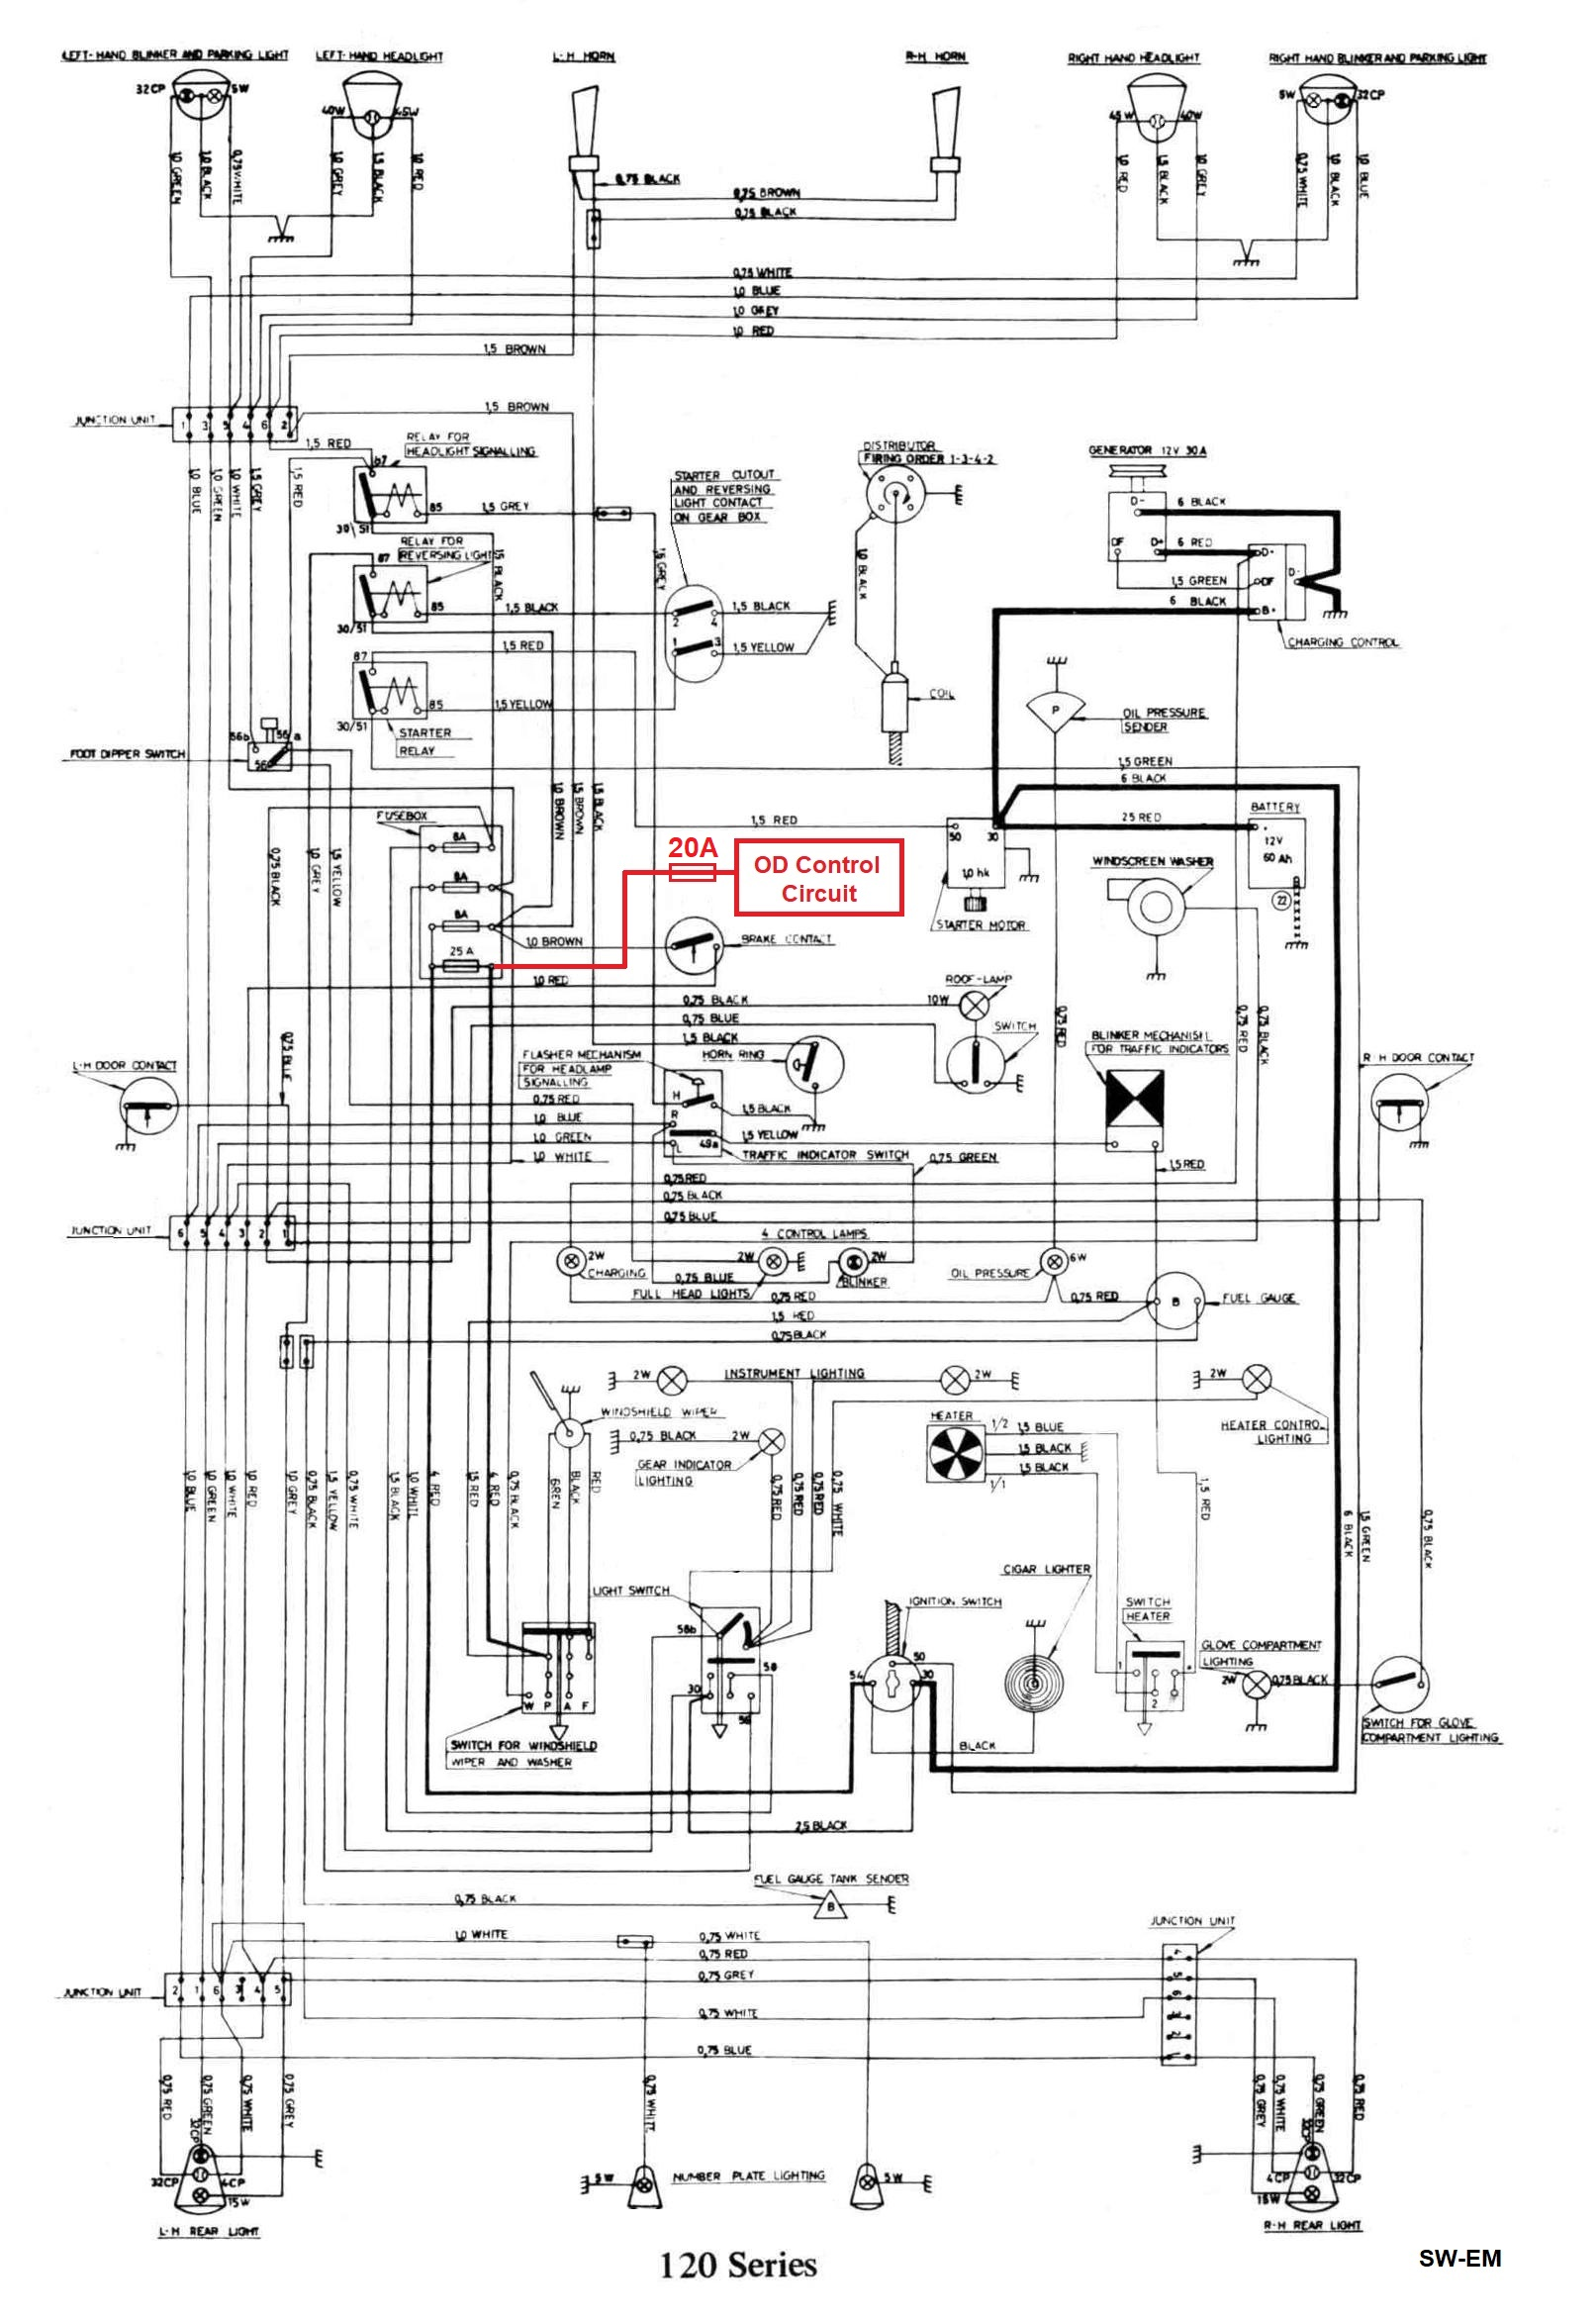 Volvo Wiring Diagram S60 - Fusebox and Wiring Diagram device-suite -  device-suite.parliamoneassieme.it | Volvo Wiring Diagram S60 |  | diagram database